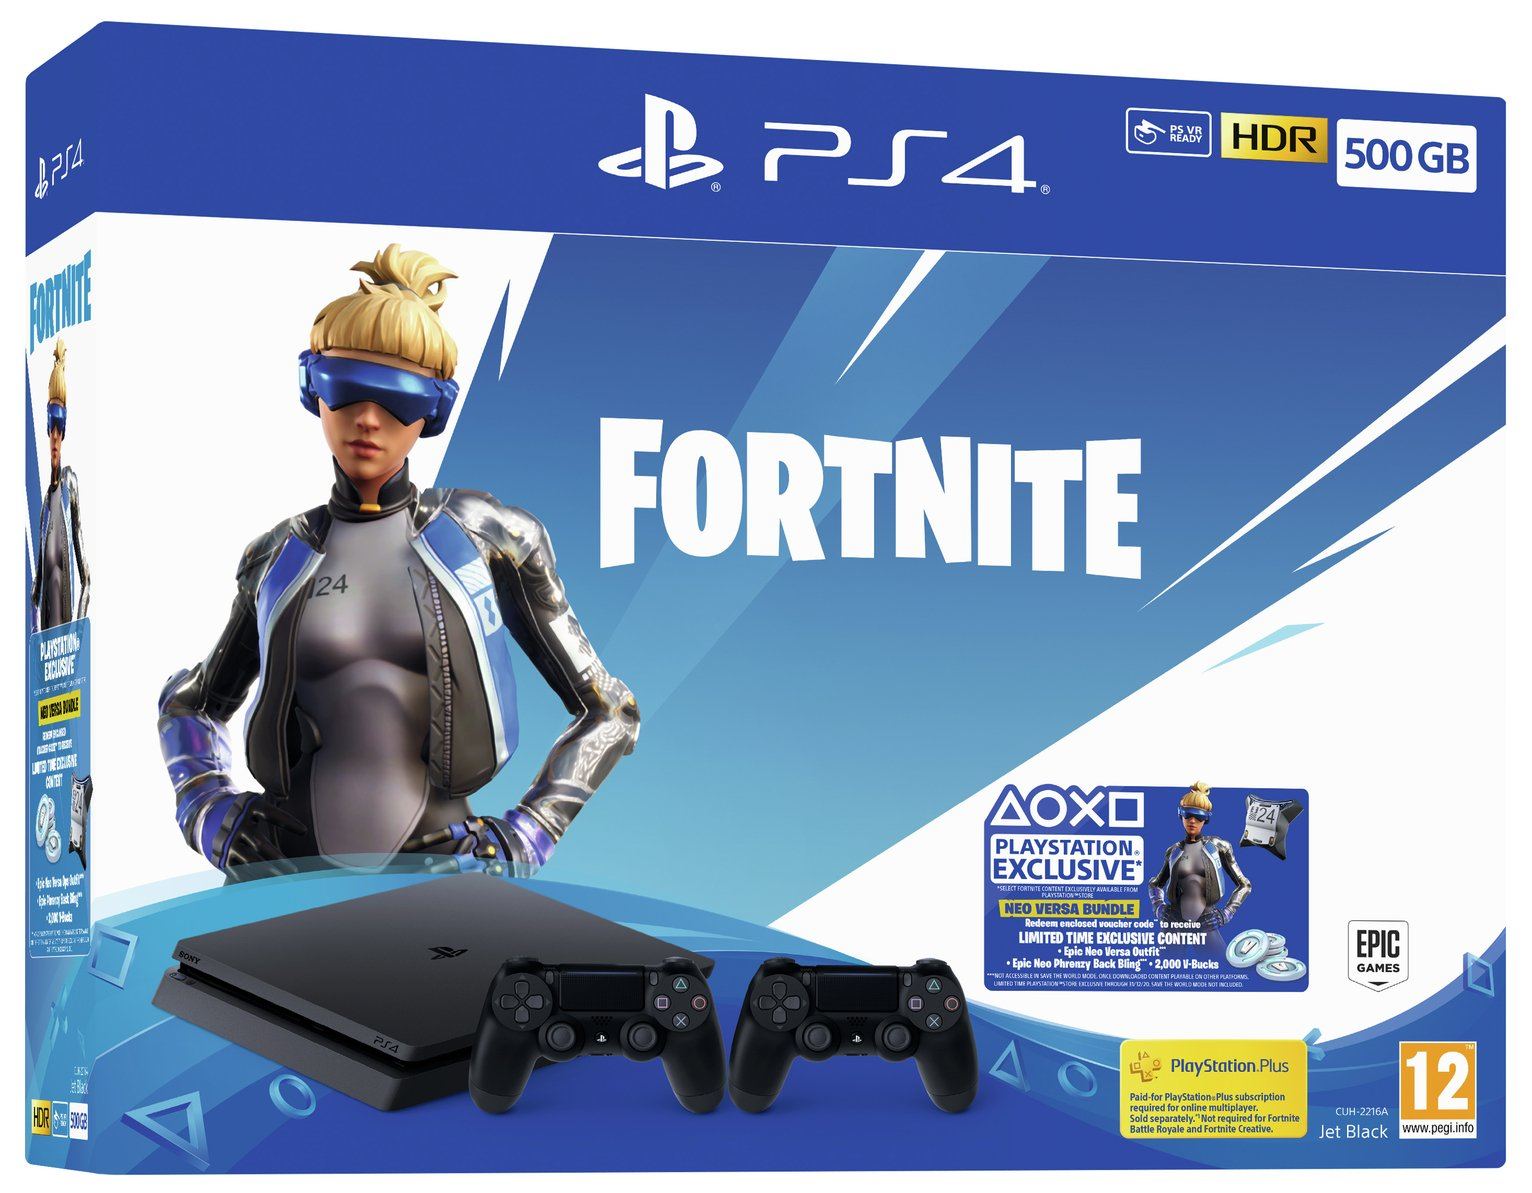 Sony PS4 500GB Console & Fortnite Neo Versa Bundle